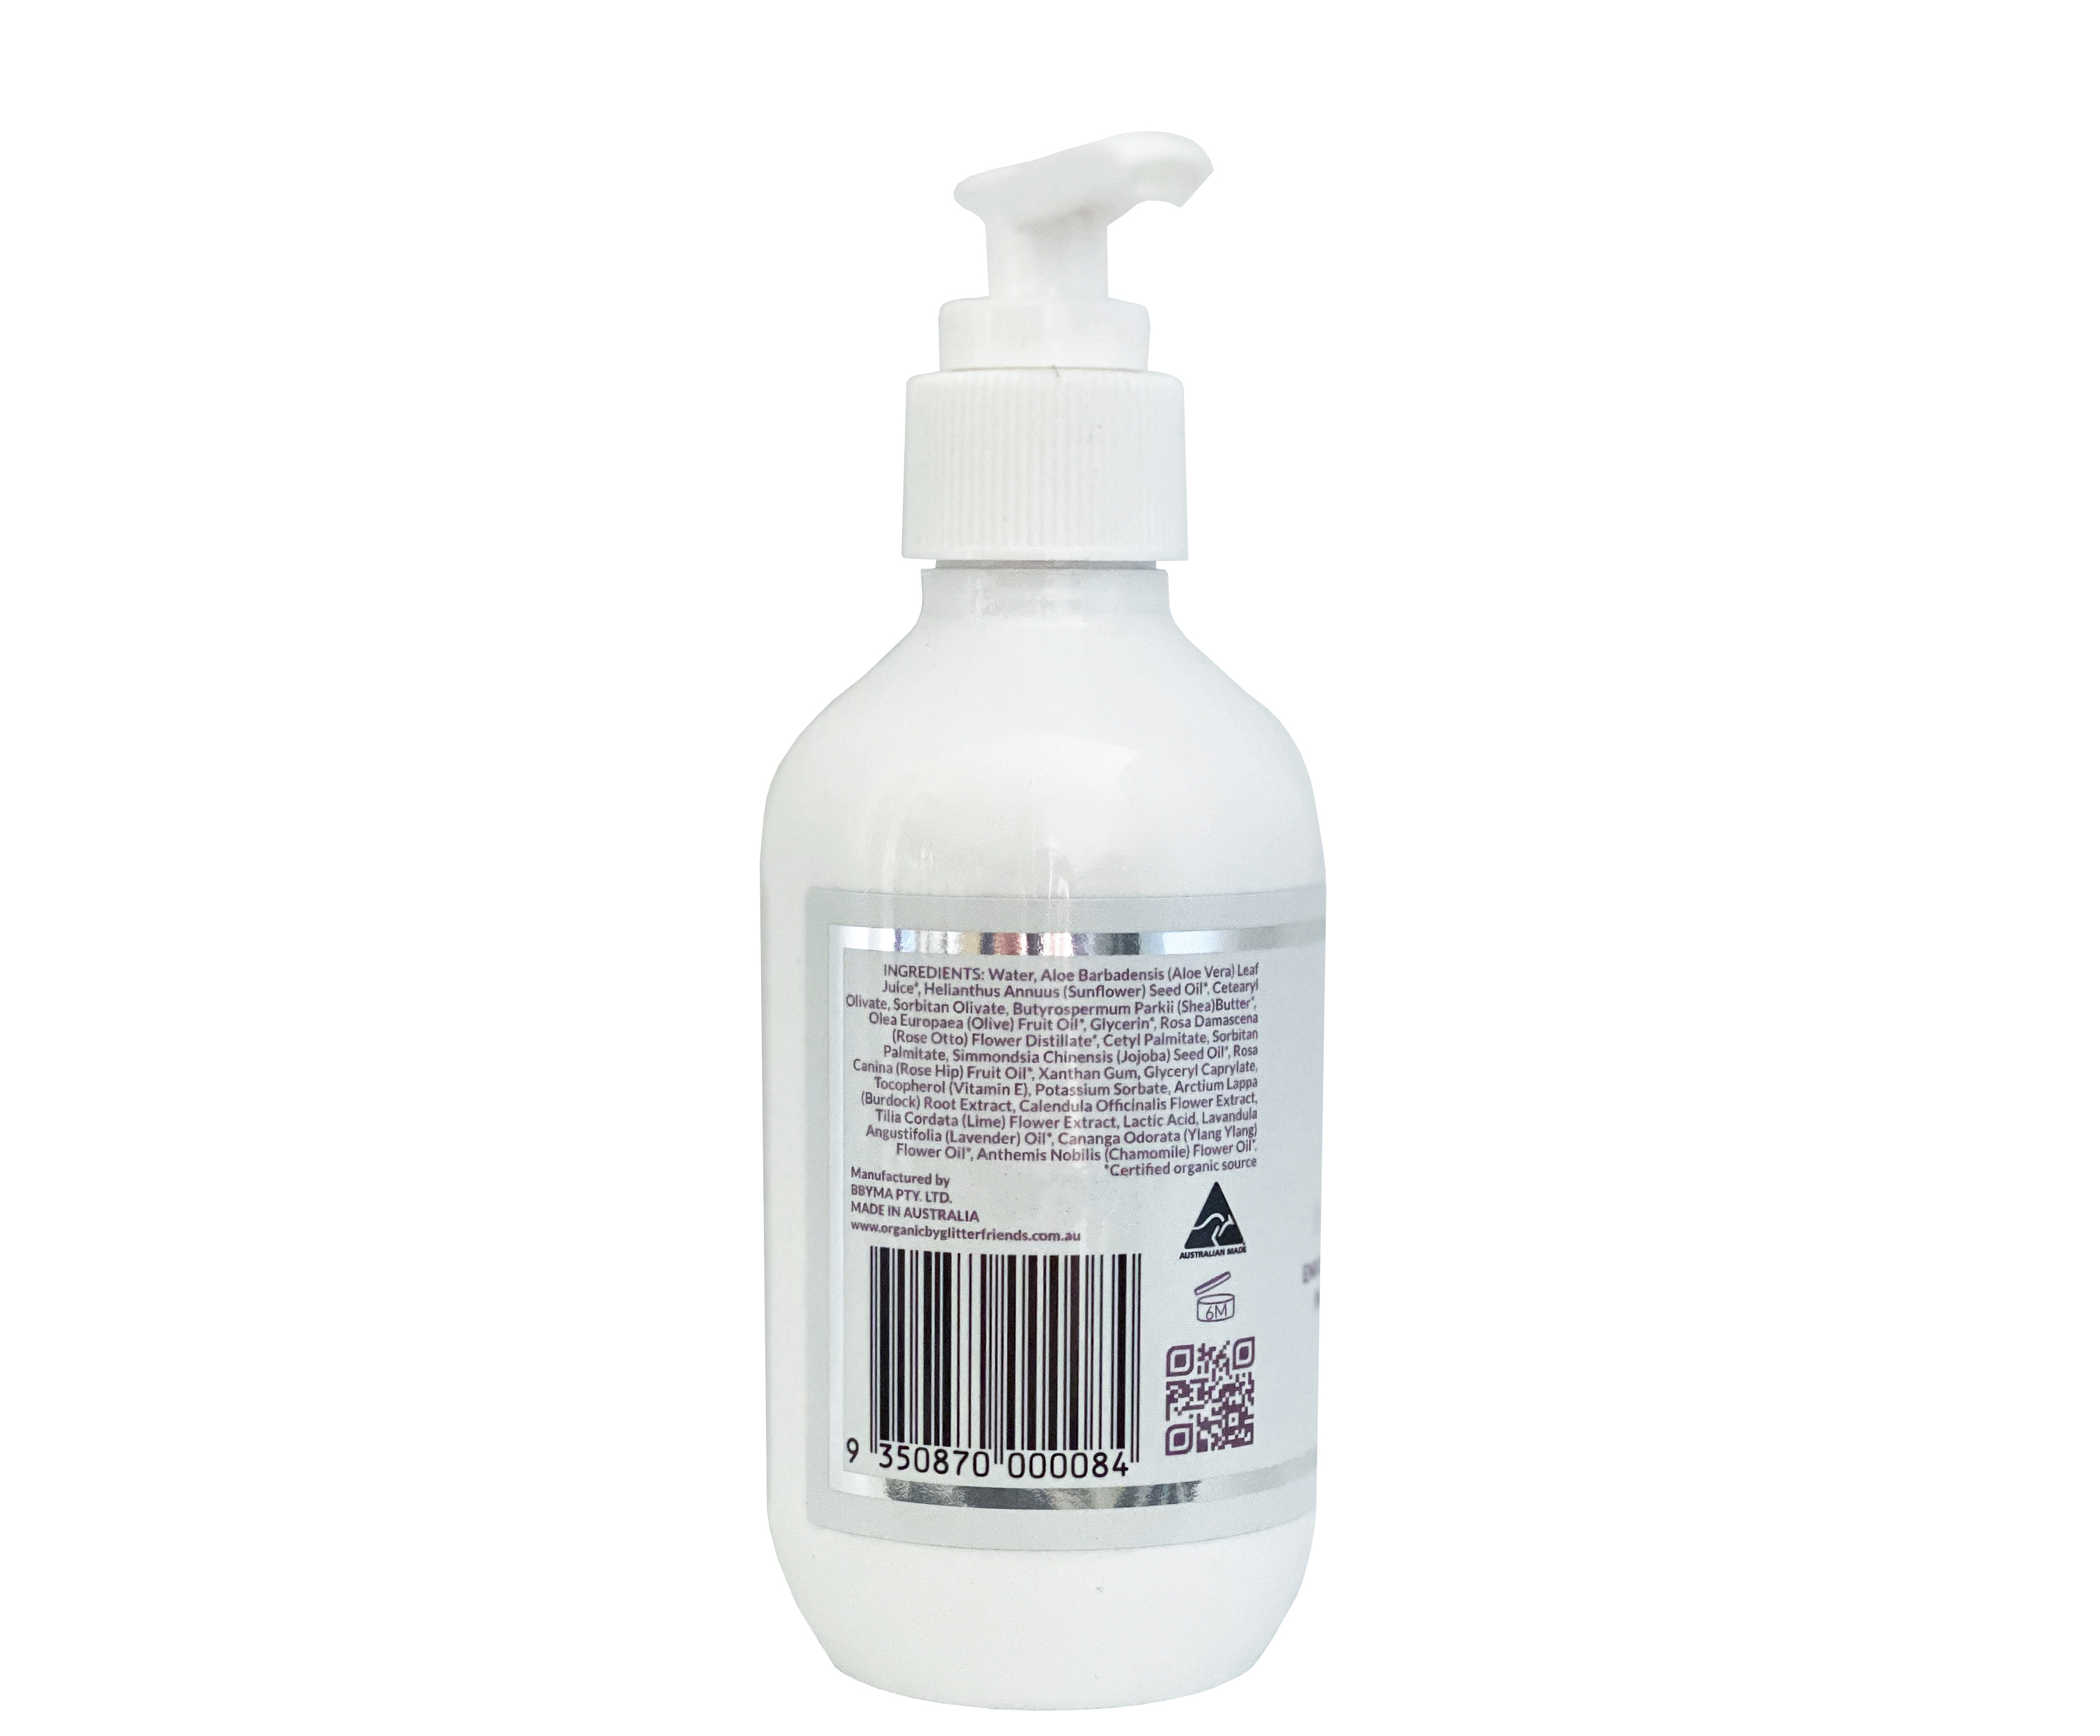 white 200ml lotion pump bottle of multi purpose natural organic face body lotion